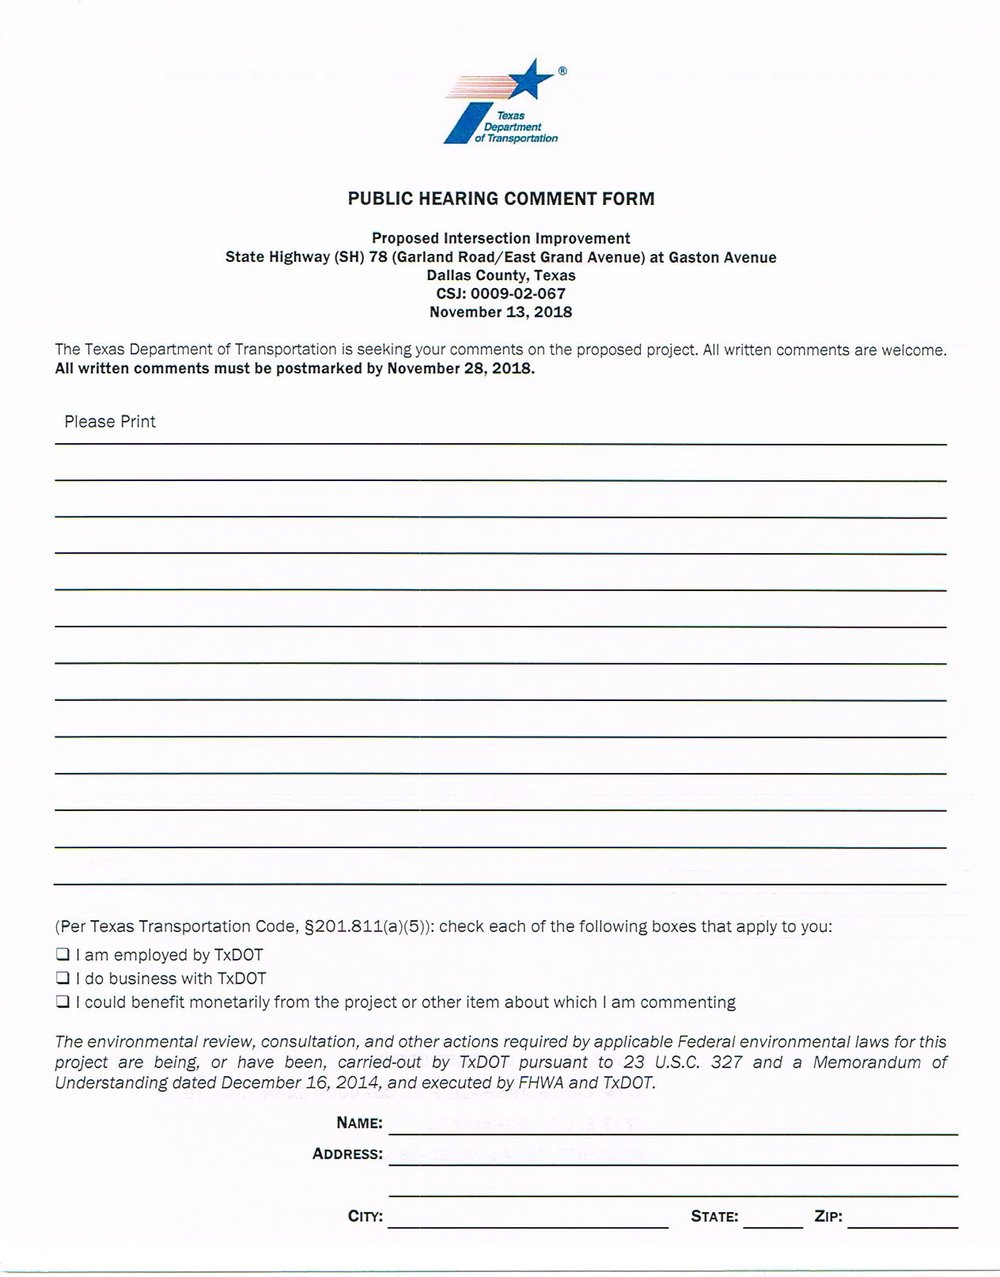 TxDOT Blank Form - Add your comments and contact information.